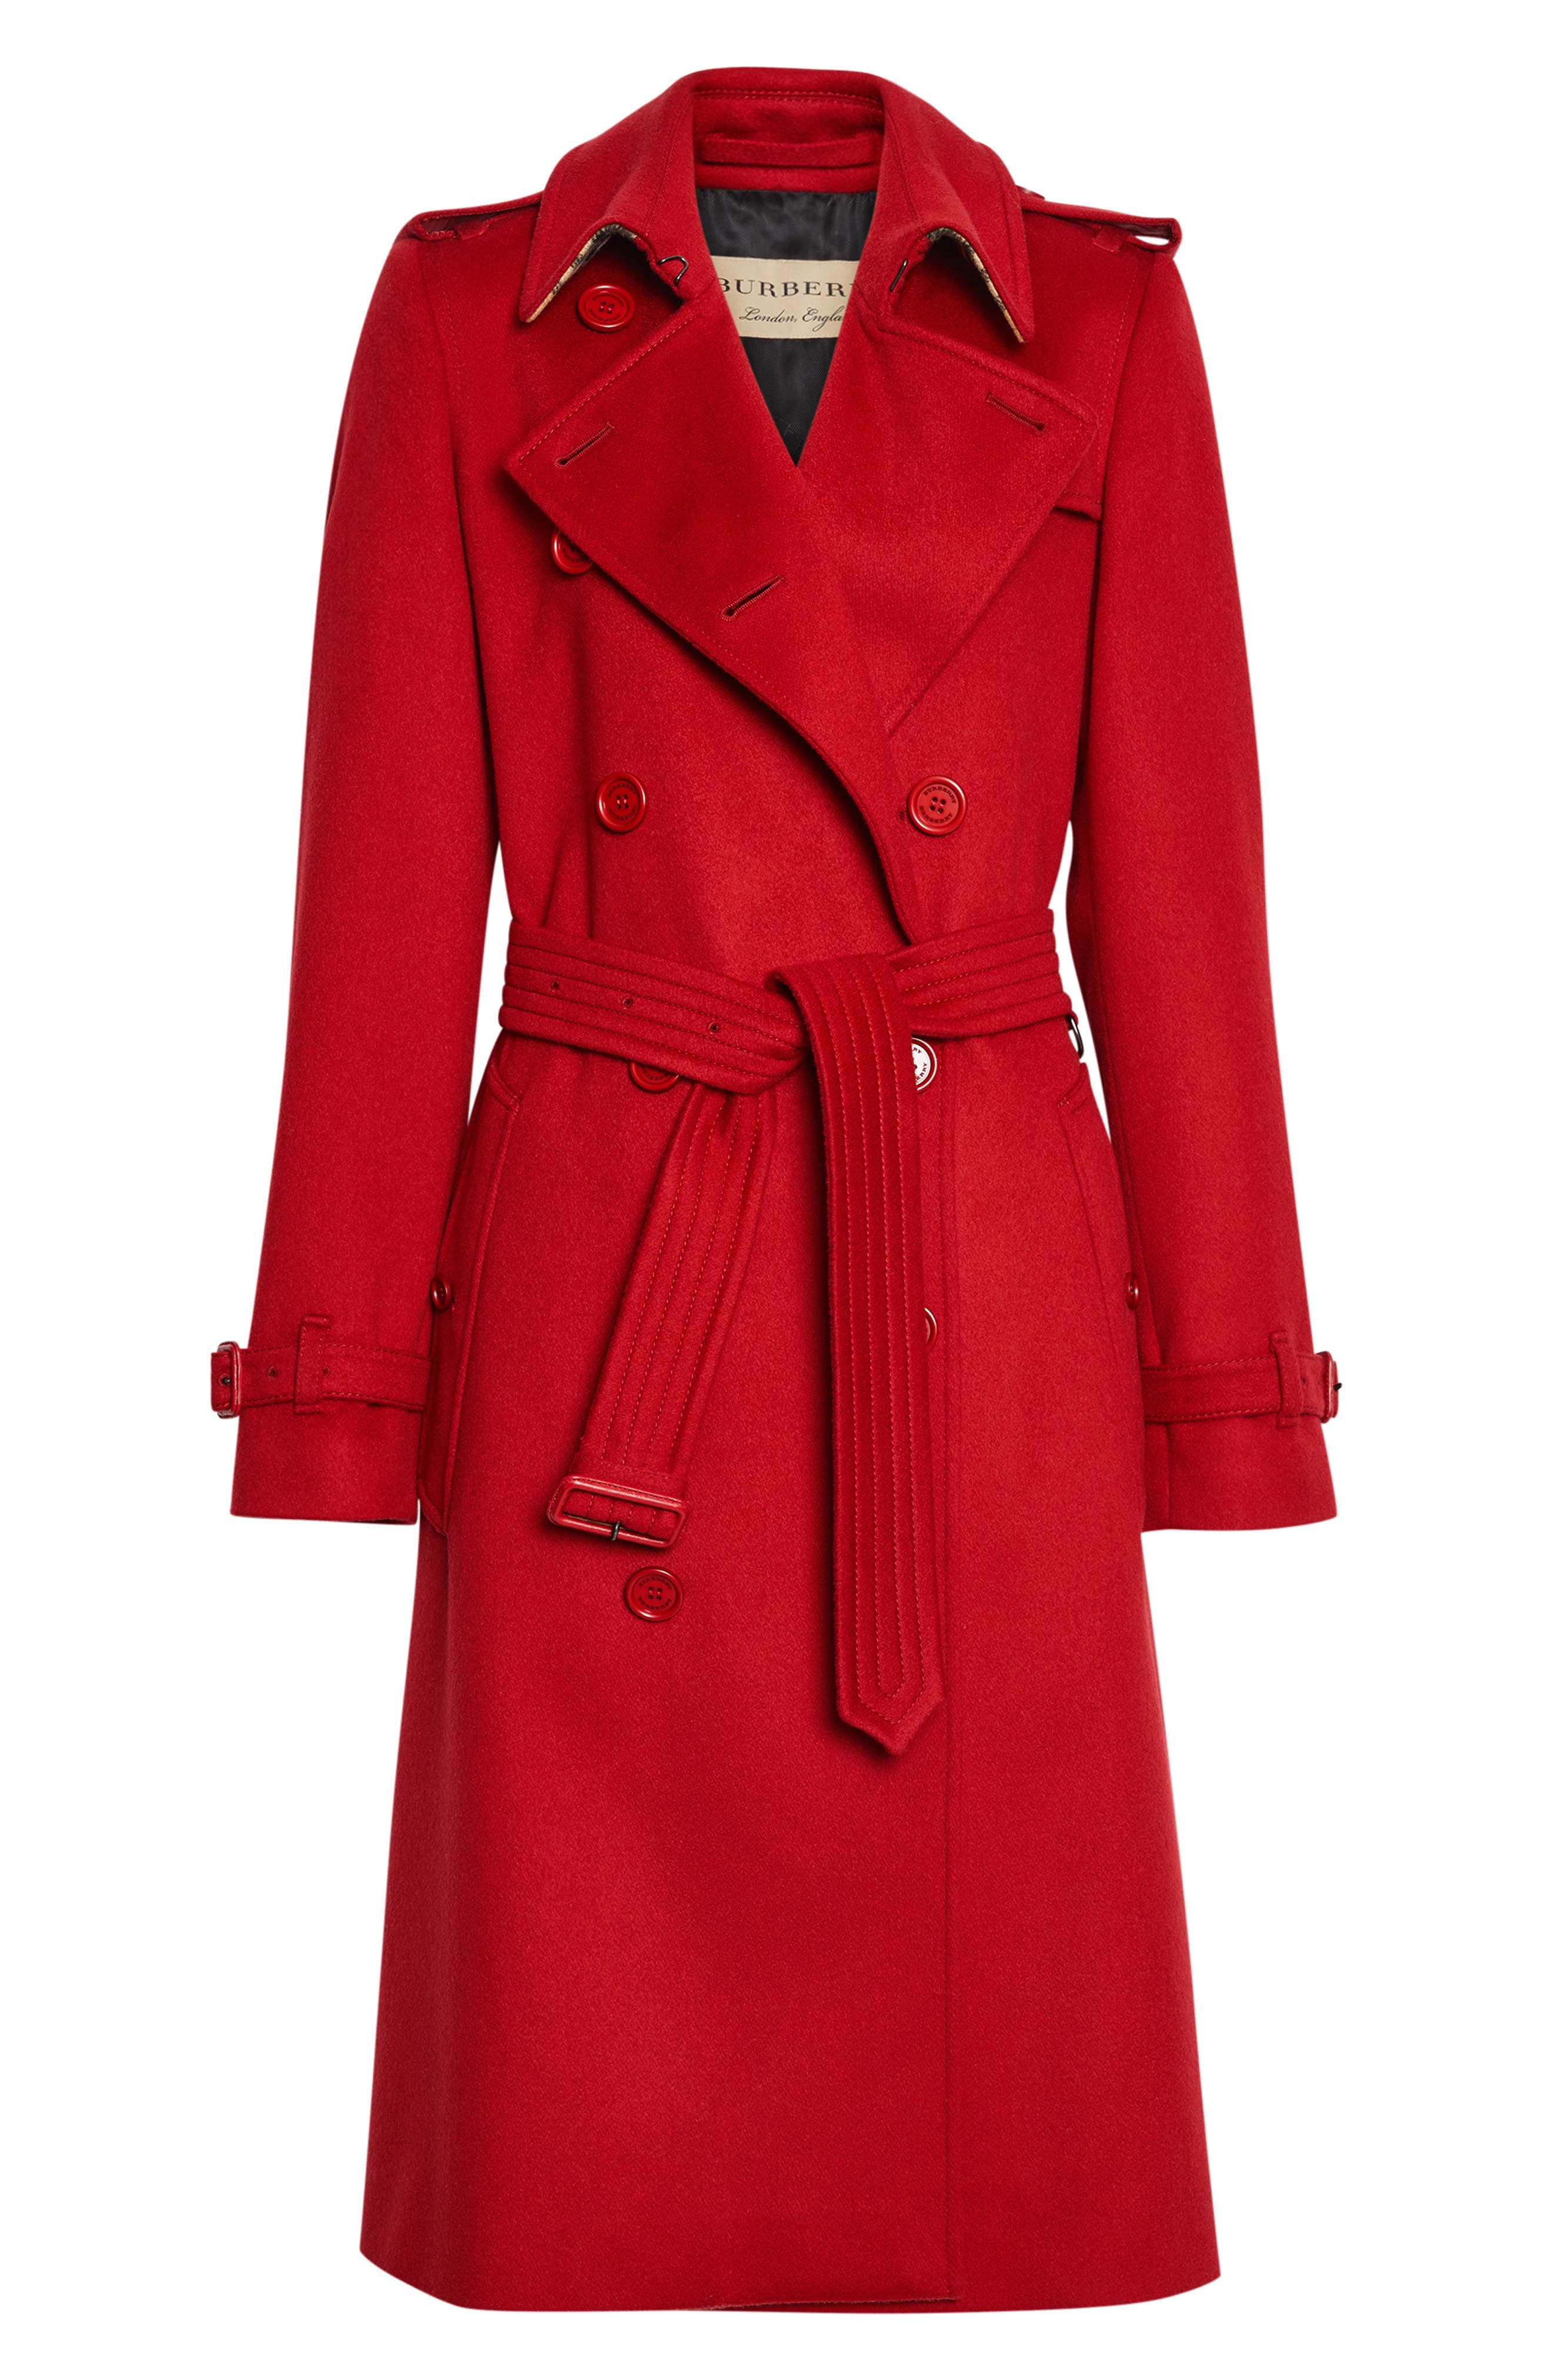 BURBERRY, Kensington Cashmere Trench Coat, Alternate thumbnail 5, color, PARADE RED